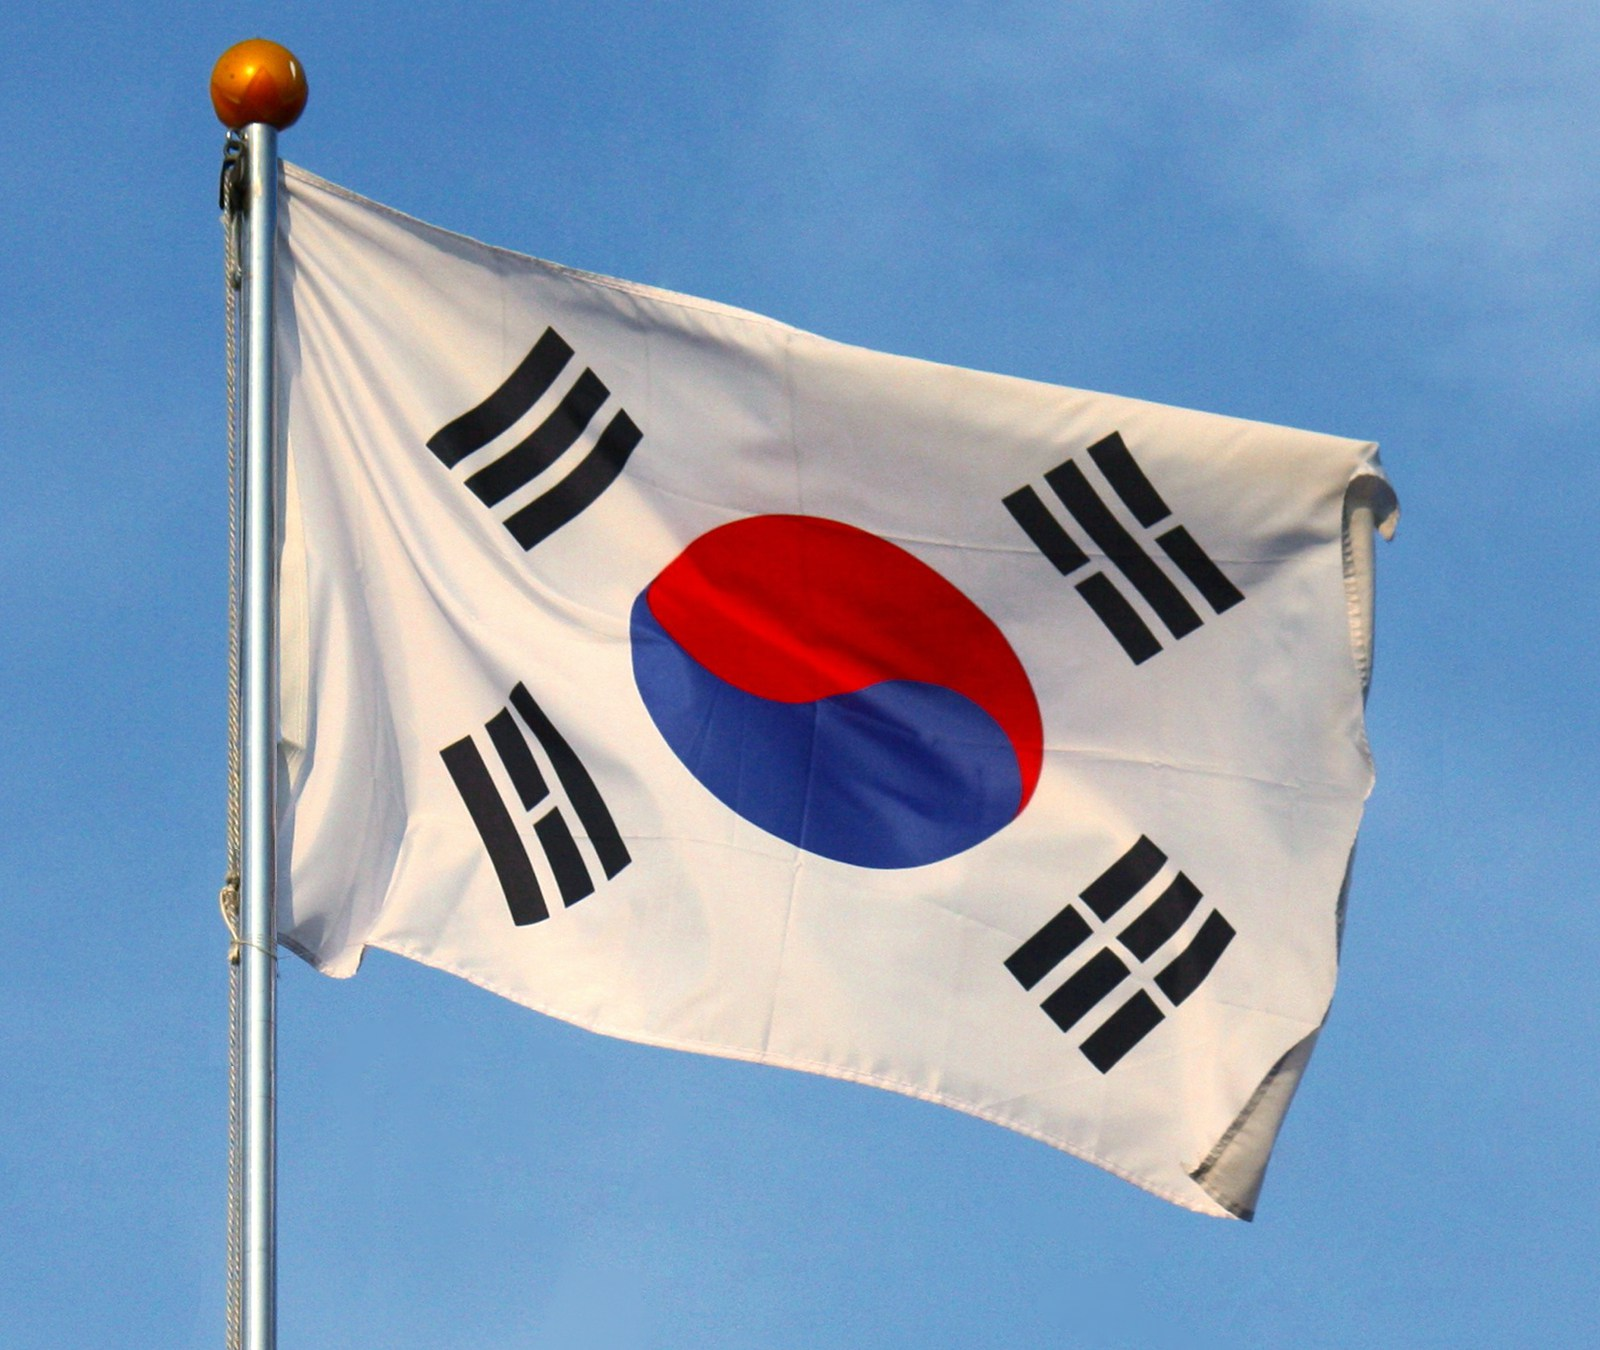 South Korean Flags (South Korea) from The World Flag Database